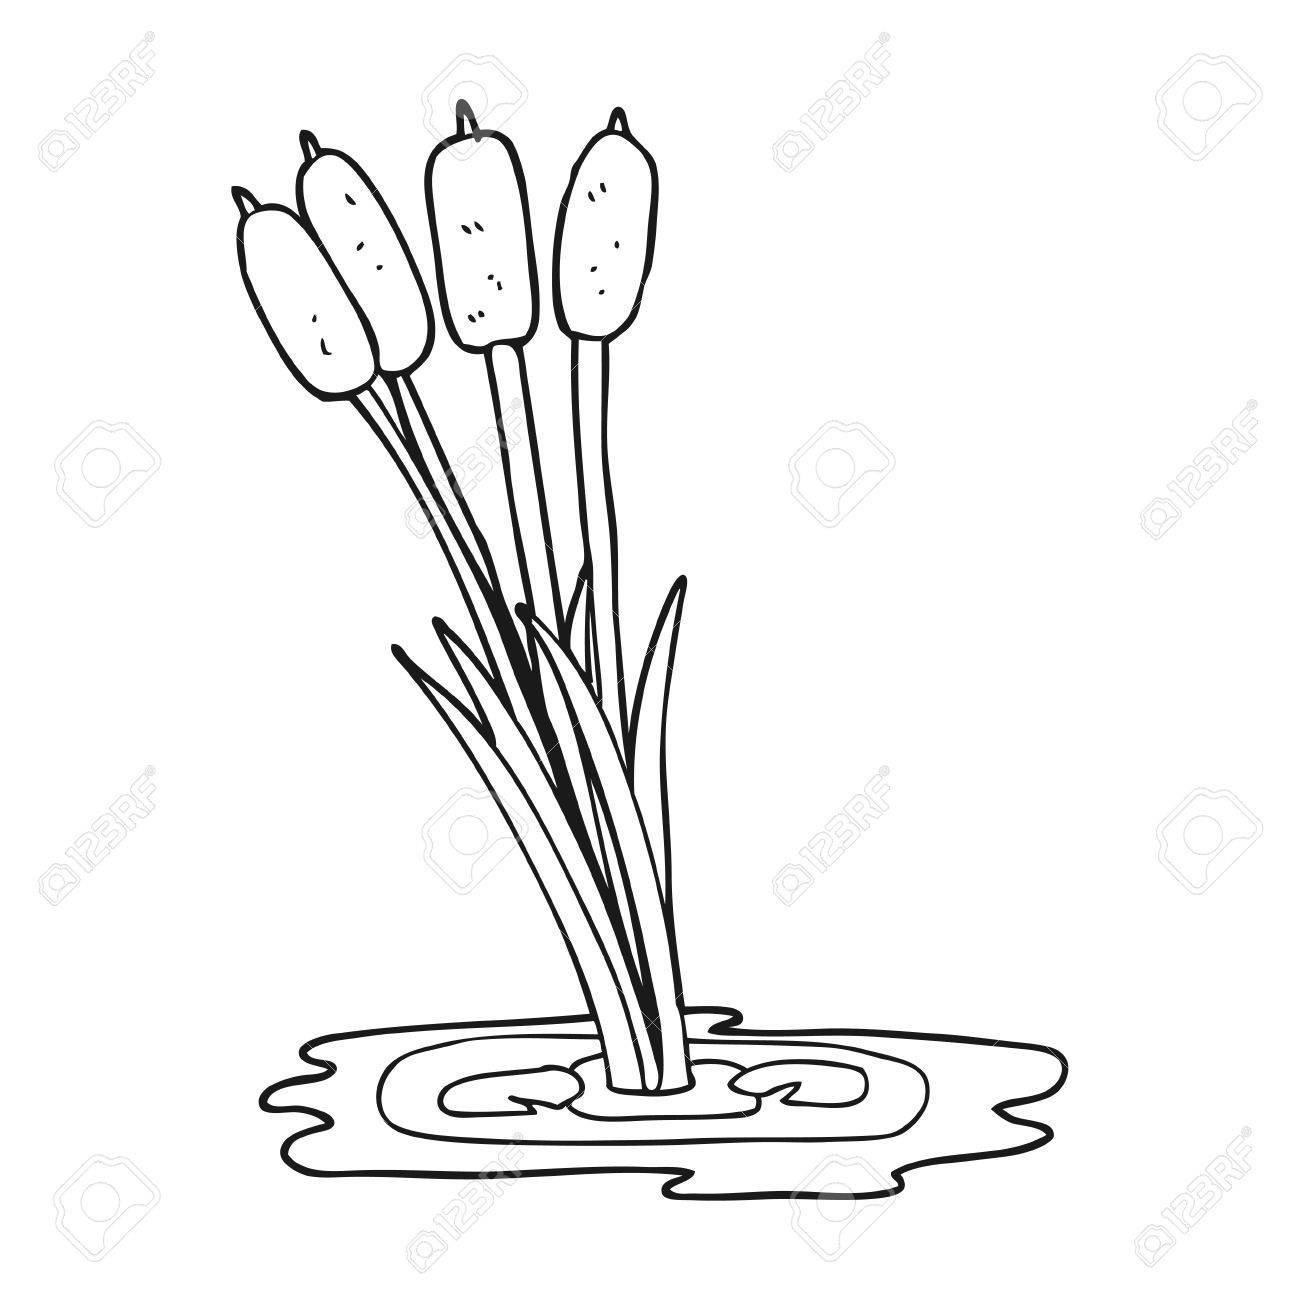 freehand drawn black and white cartoon reeds royalty free cliparts